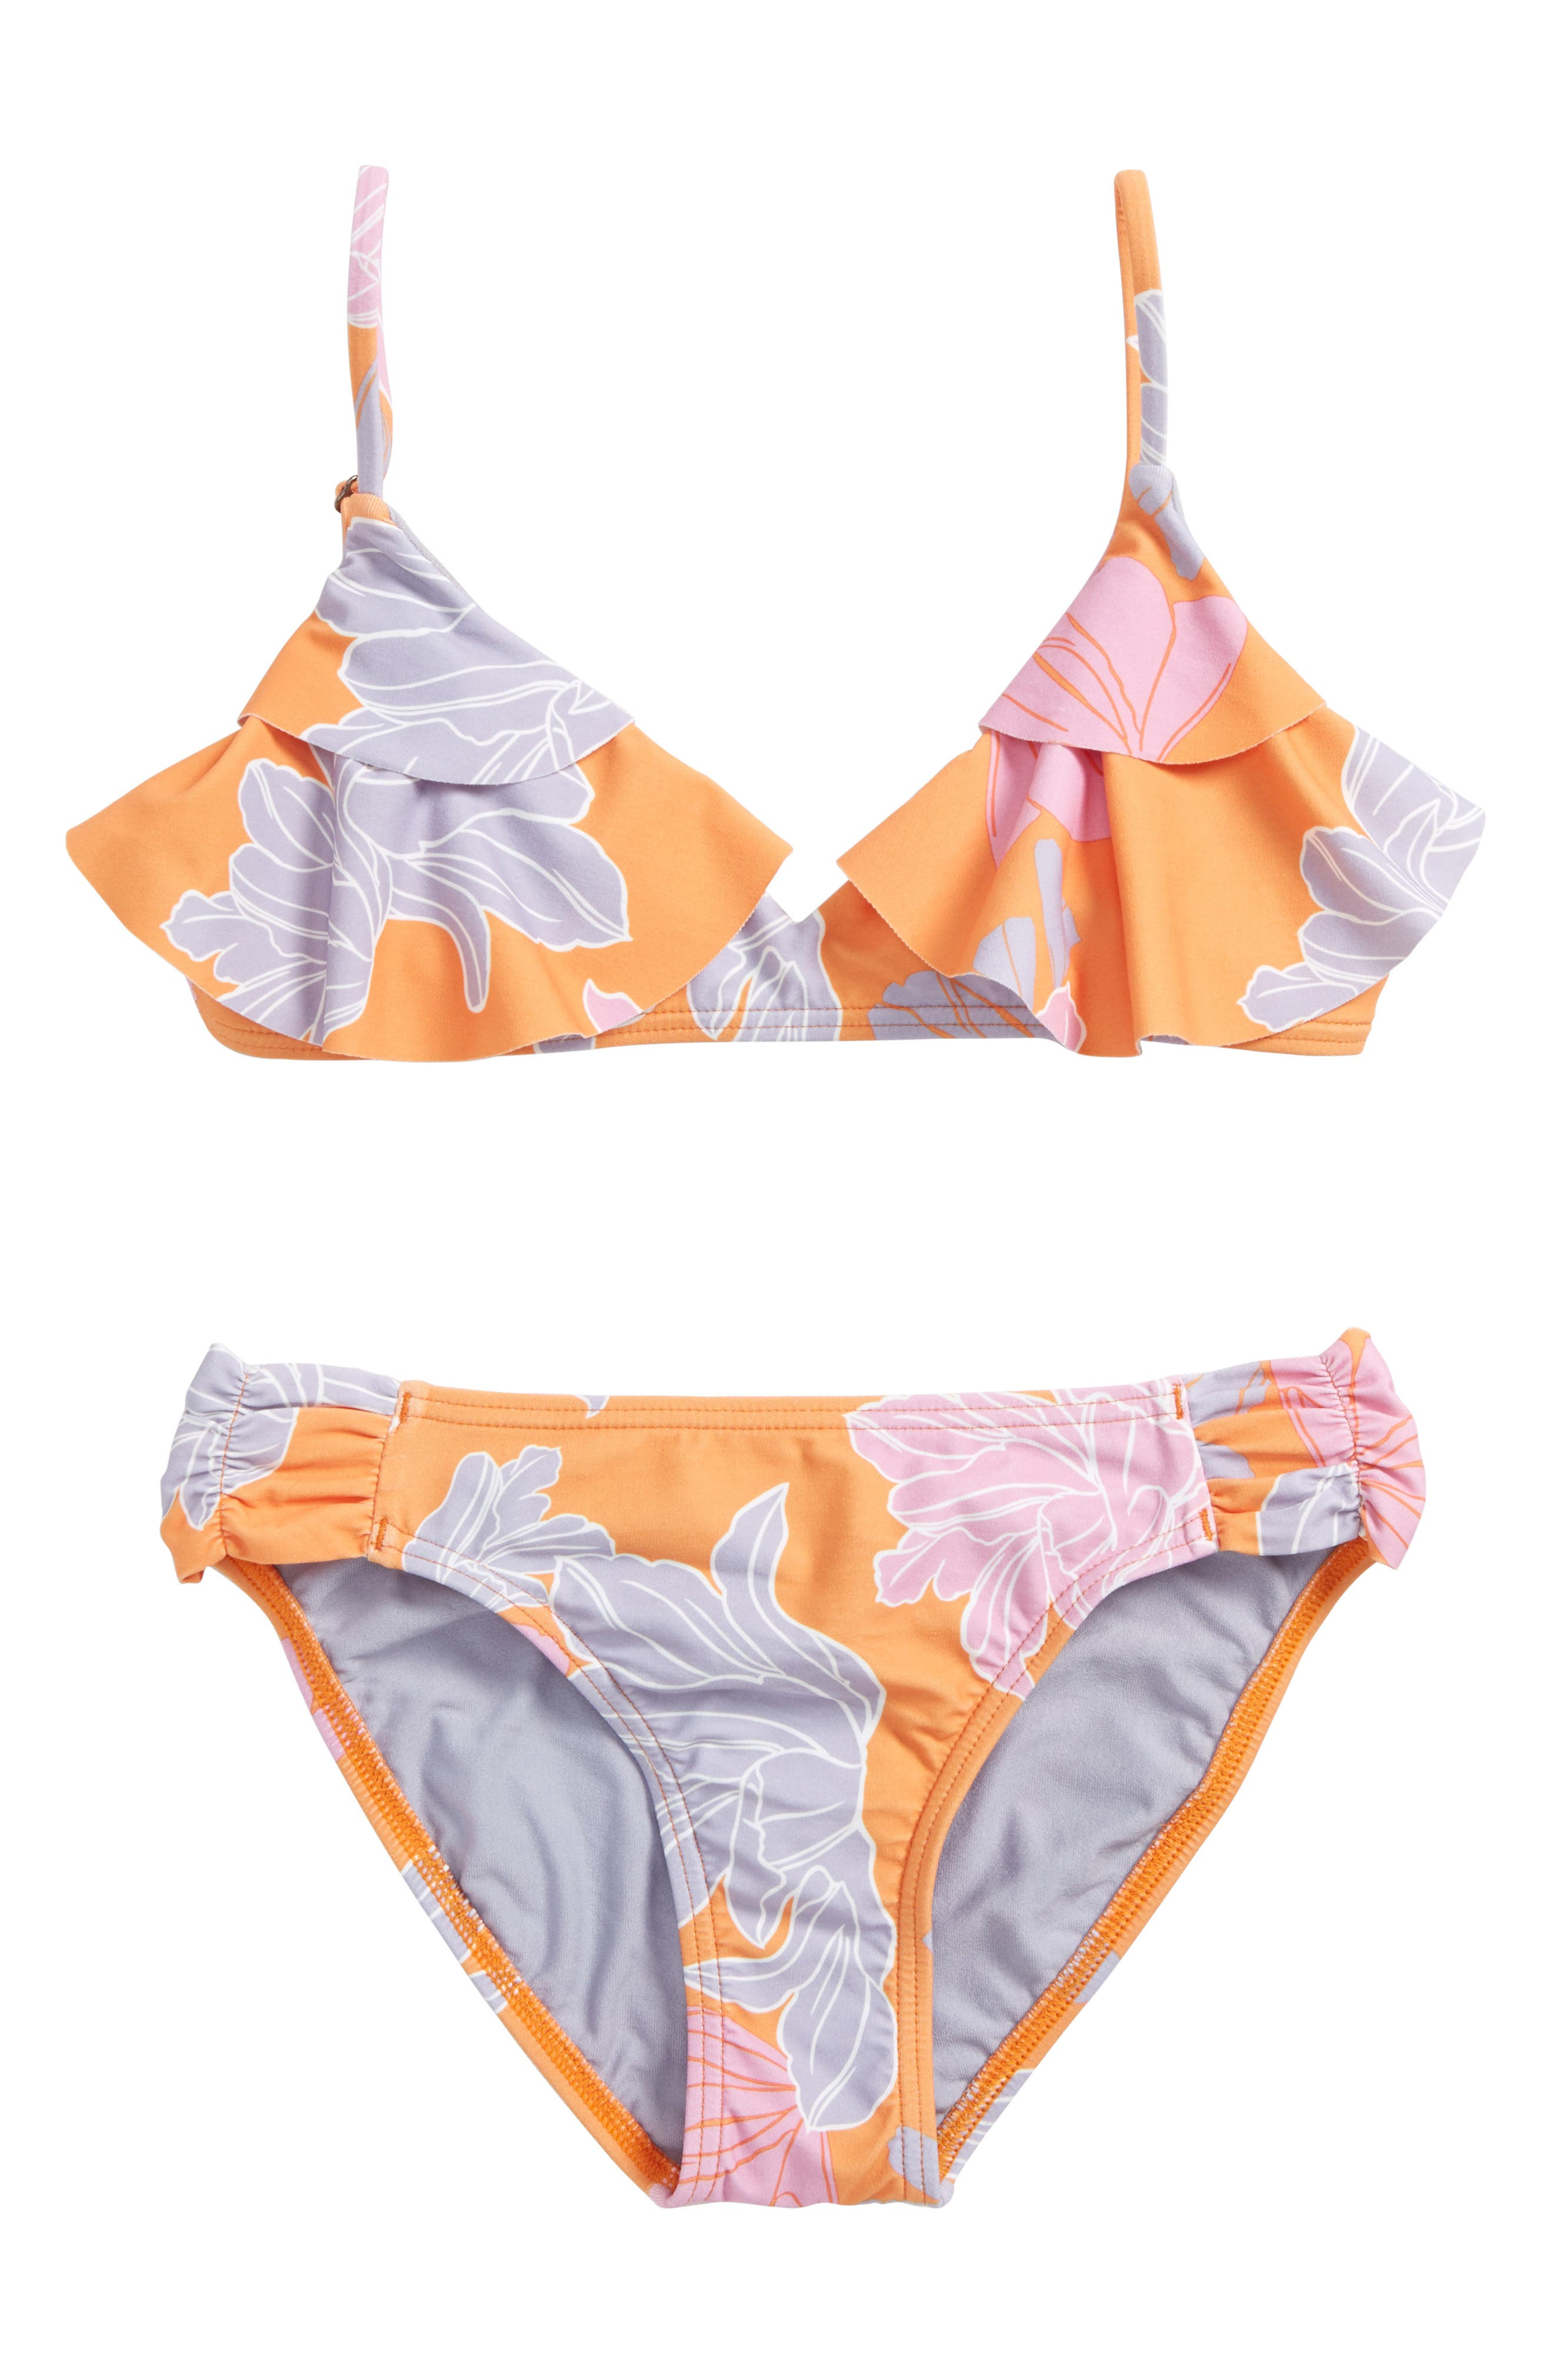 Zilla Floral Ruffle Two-Piece Swimsuit,                             Main thumbnail 1, color,                             805